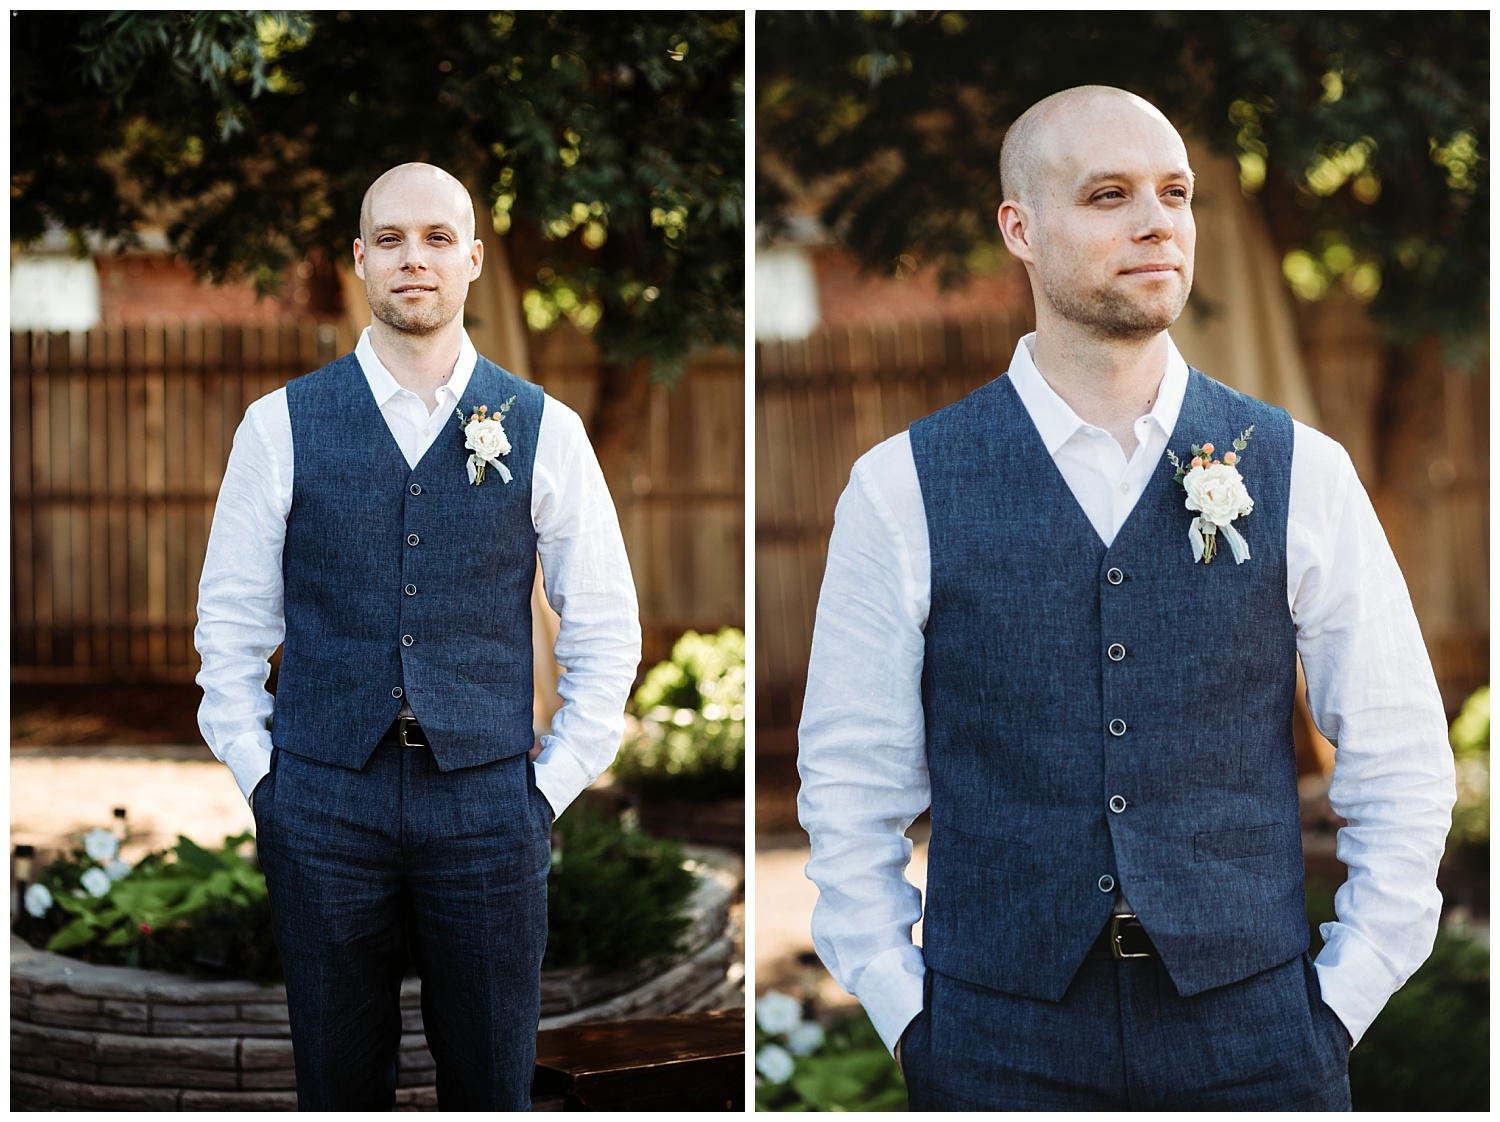 Groom posing for photos in this beautiful backyard wedding.